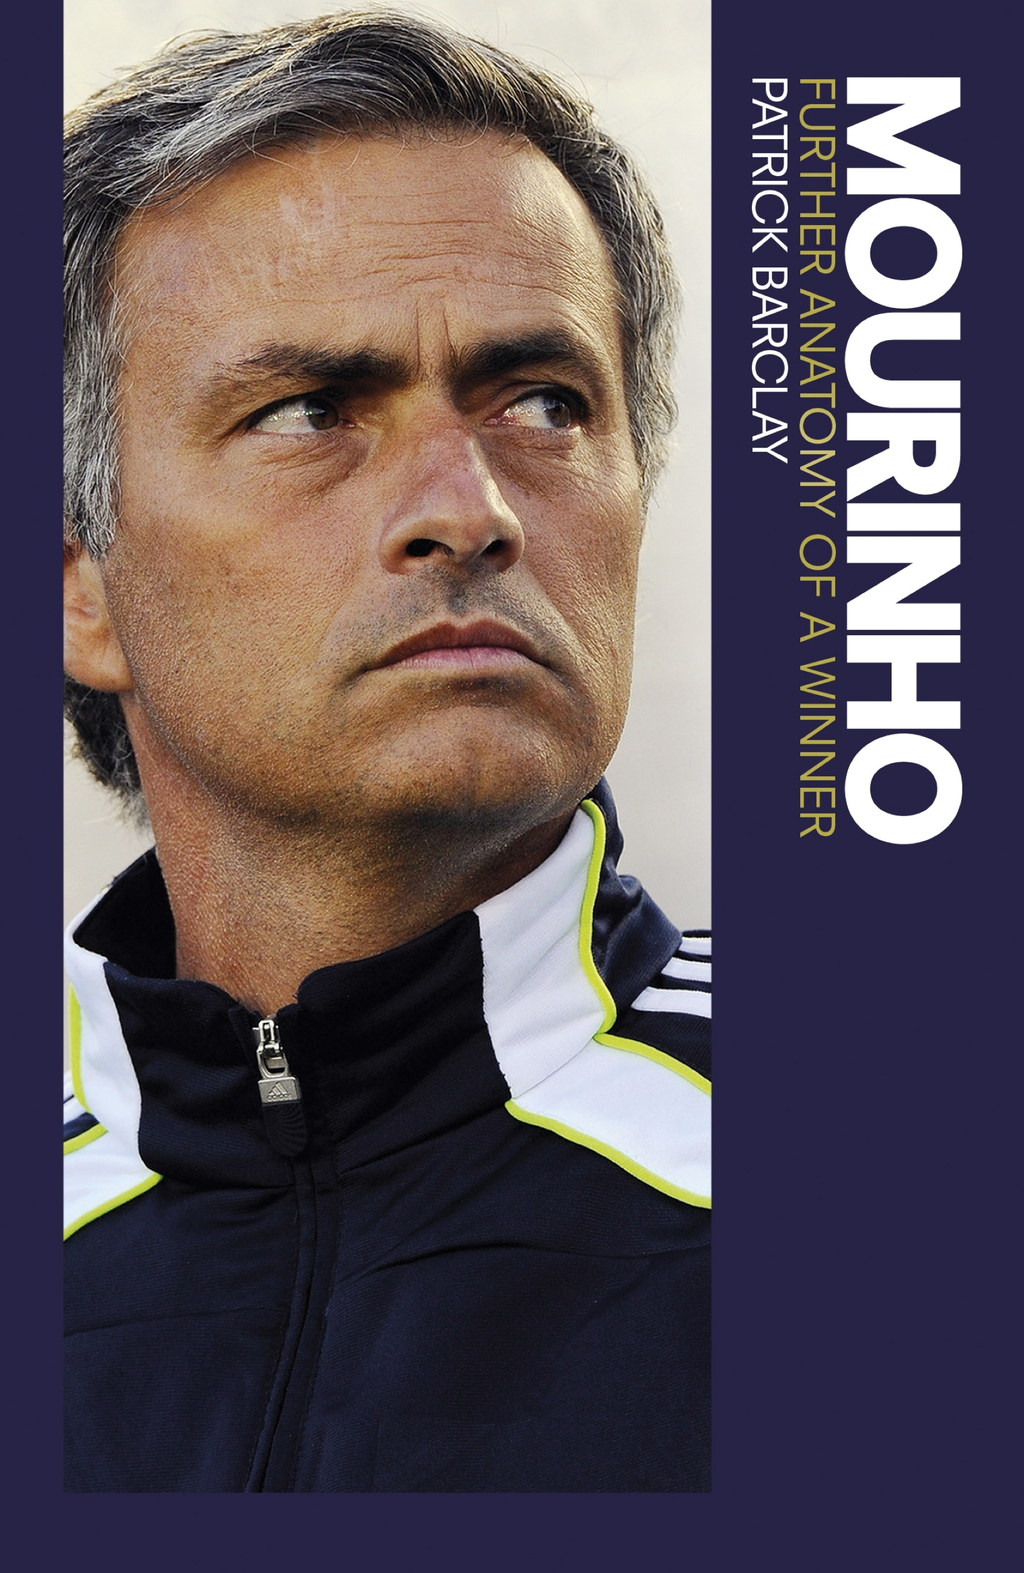 Mourinho: Further Anatomy of a Winner Further Anatomy of a Winner